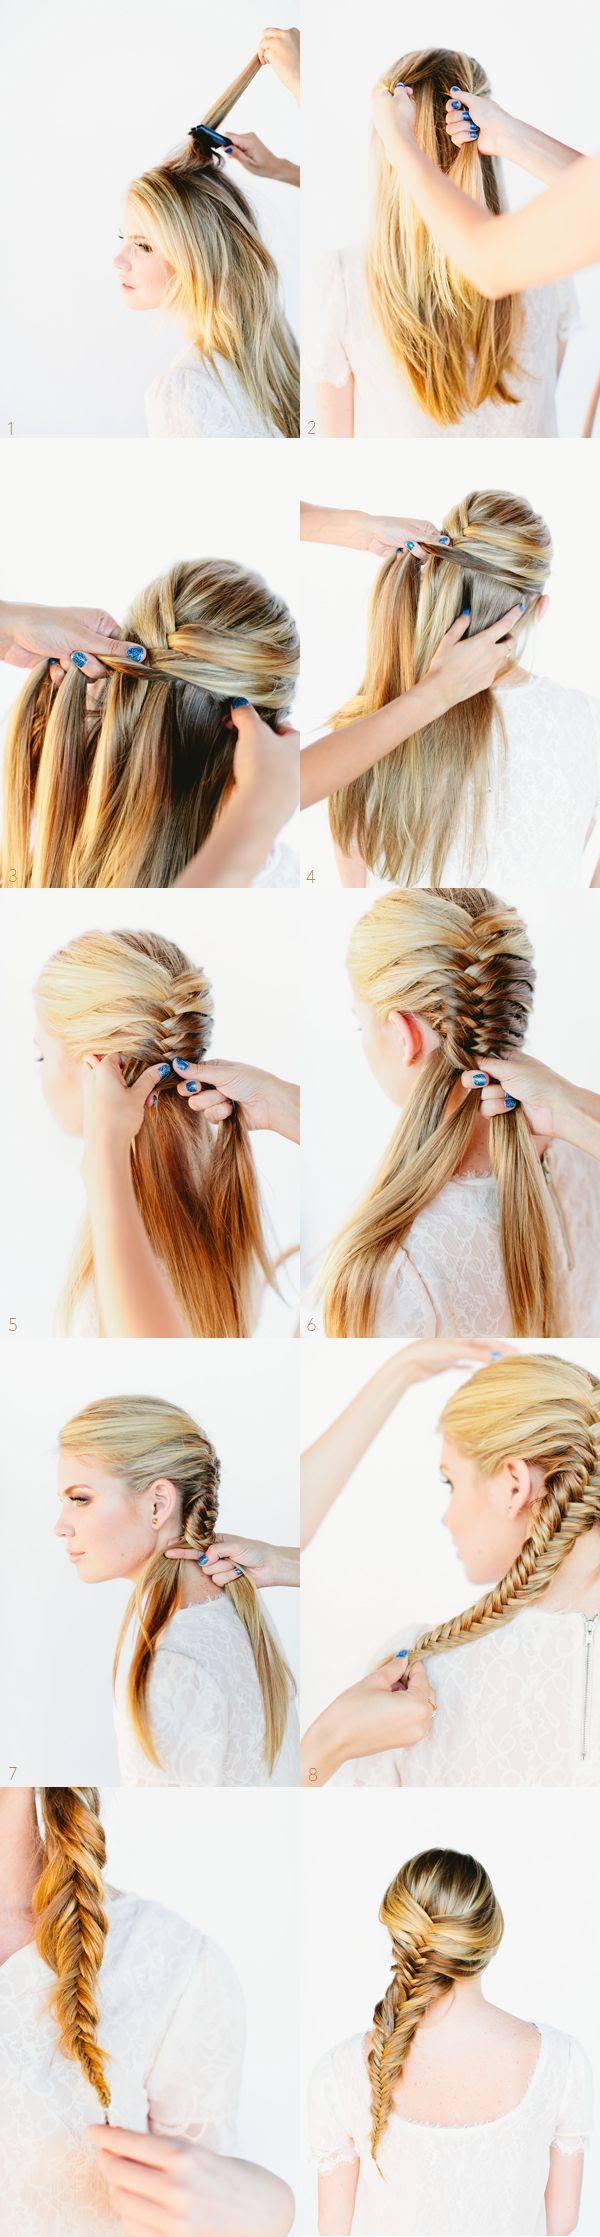 Fishtail Braid Hair Tutorial  Haven't seen the fishtail braid started this one way before. Interesting.